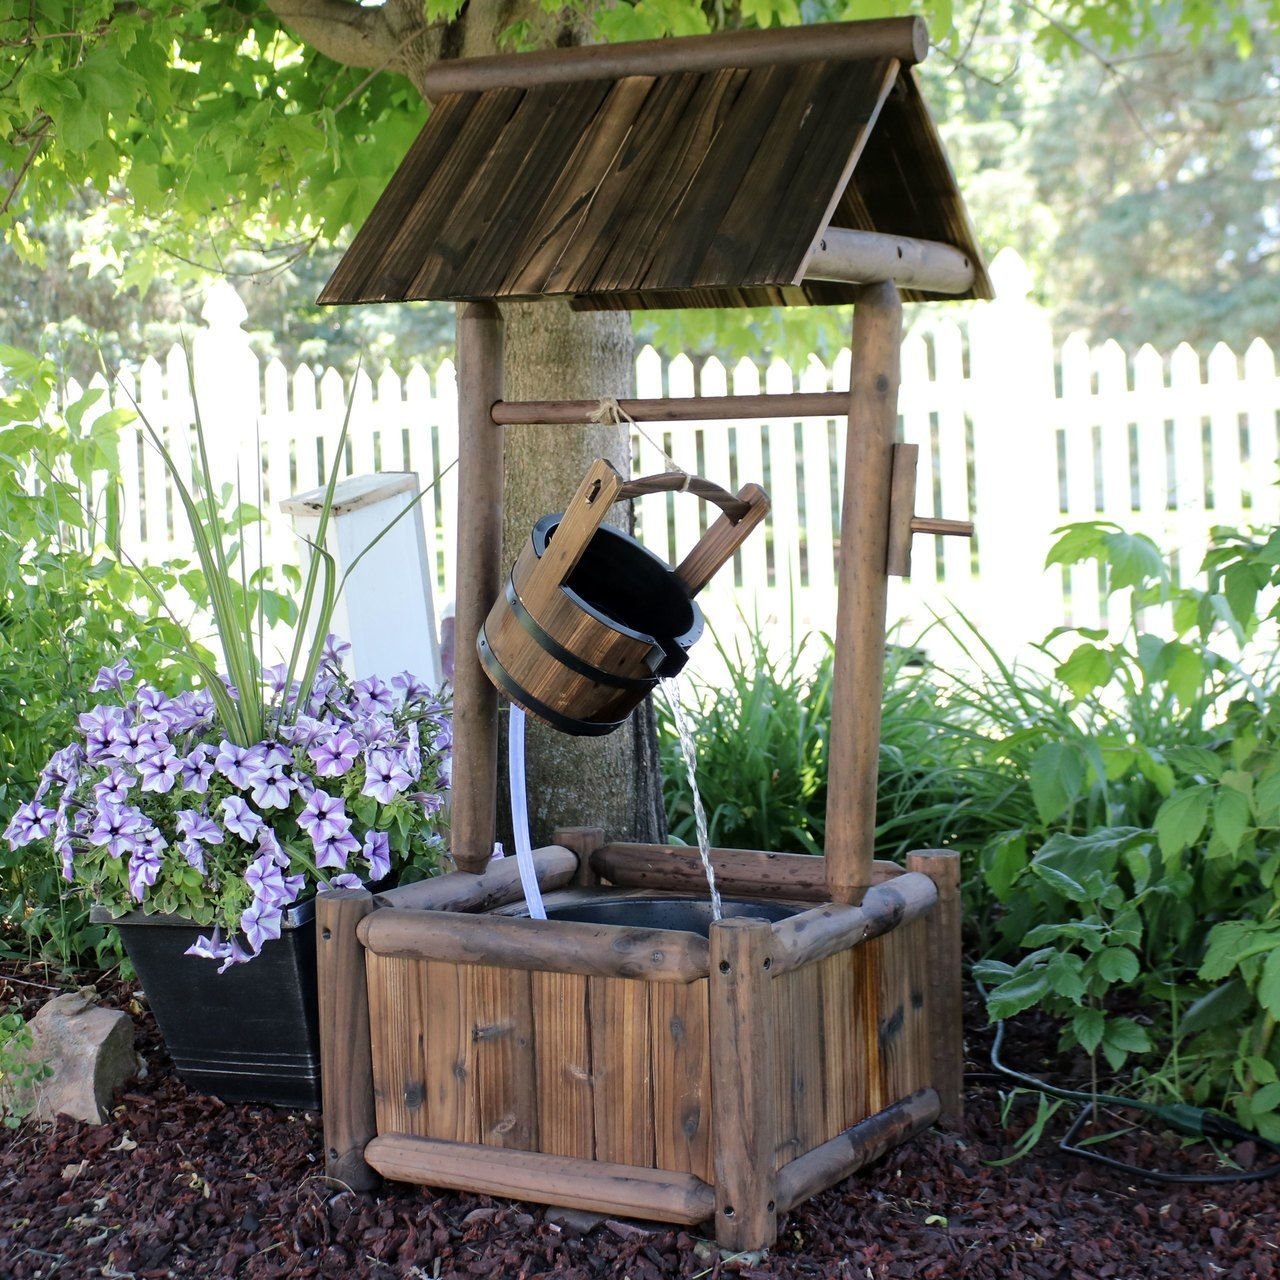 Sunnydaze Rustic Wood Wishing Well Outdoor Fountain with ... on rustic gardening, garden fountains, beautiful backyard fountains, classic backyard fountains, tropical backyard fountains, modern backyard fountains, unique backyard fountains, elegant backyard fountains, large backyard fountains, wood backyard fountains, small backyard fountains, bird baths and fountains,